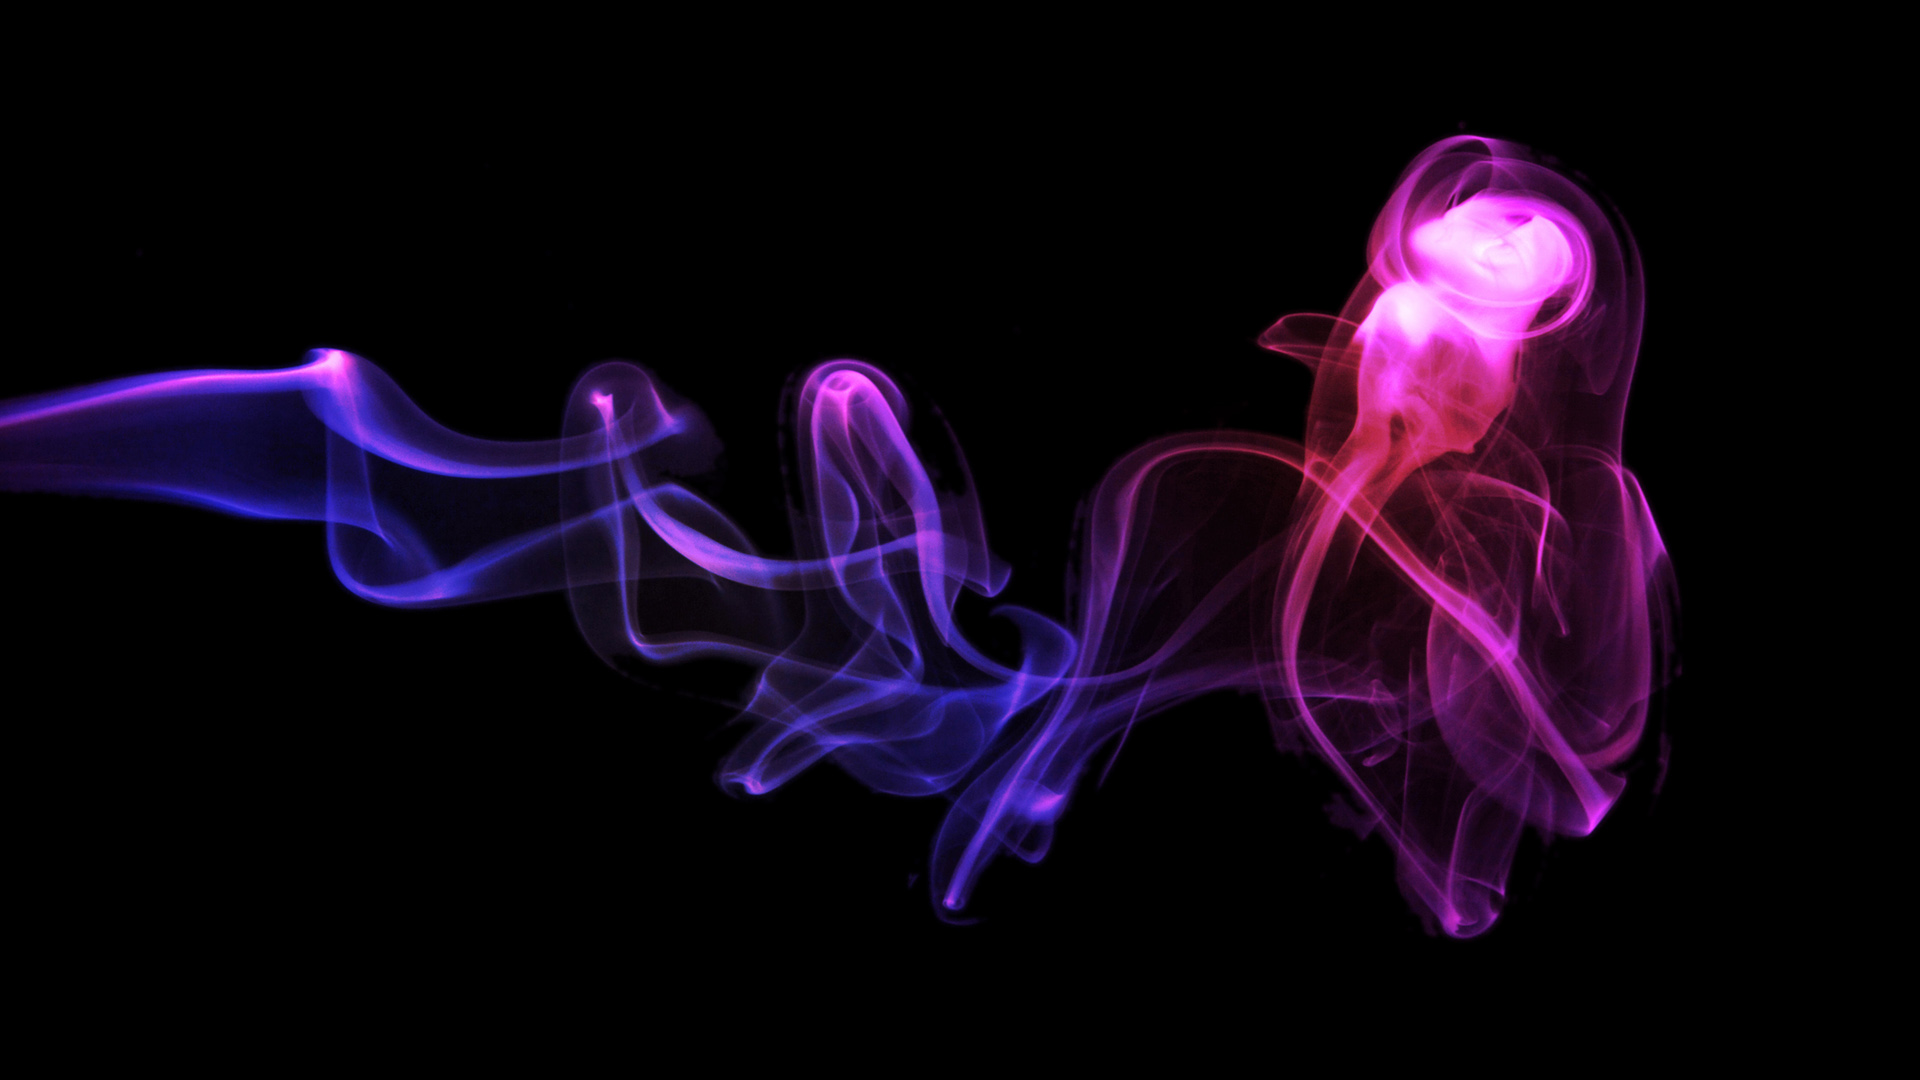 smoke wallpapers photos and desktop backgrounds up to 8K